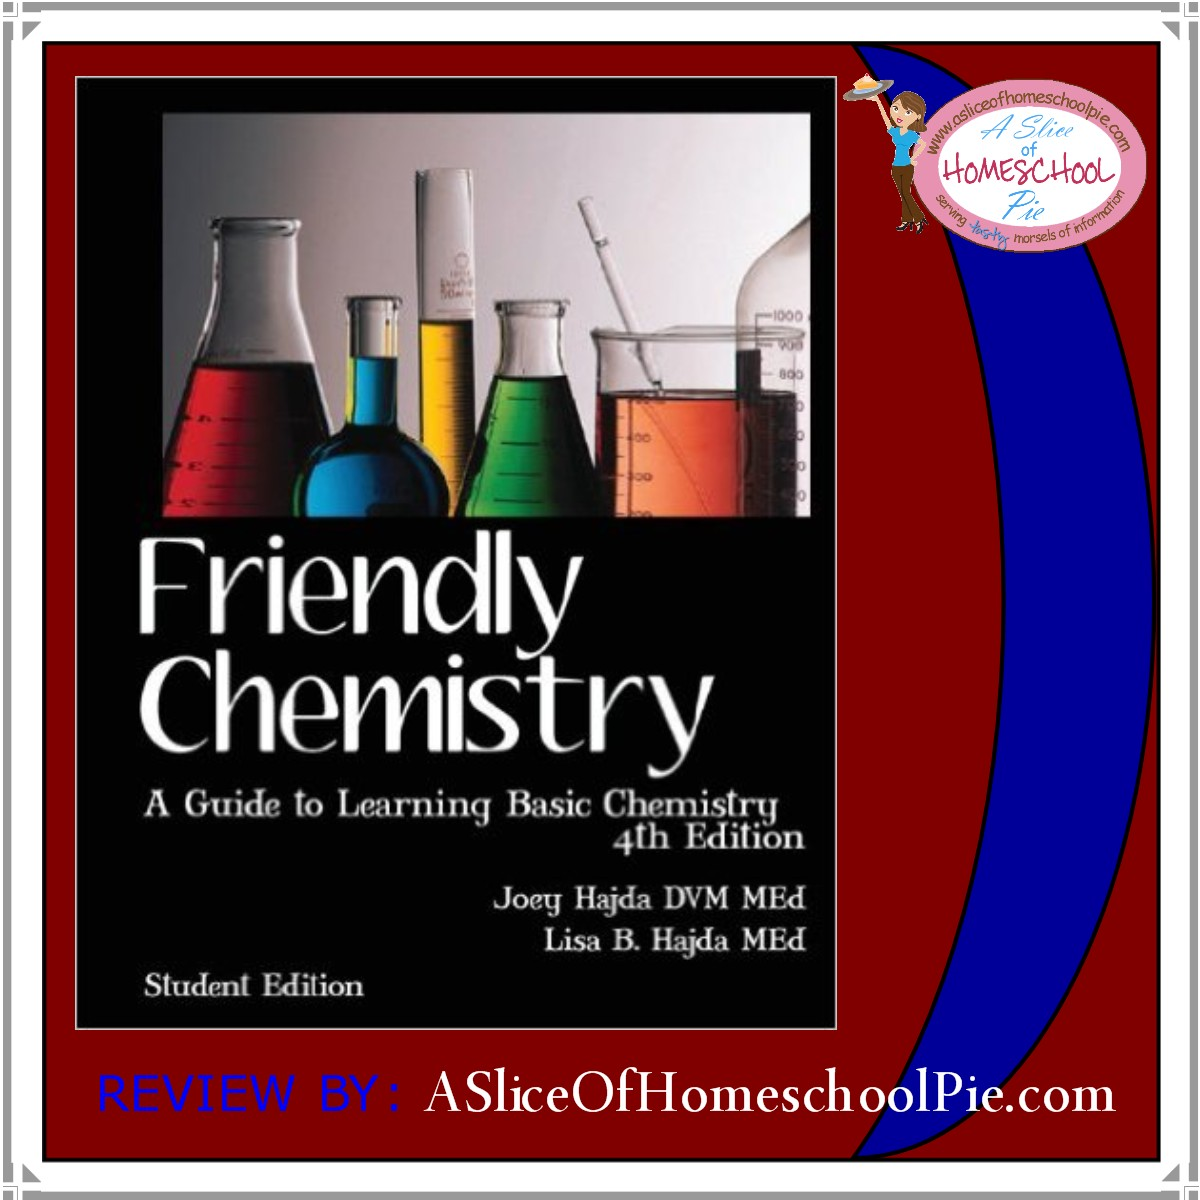 High school chemistry curriculum guide